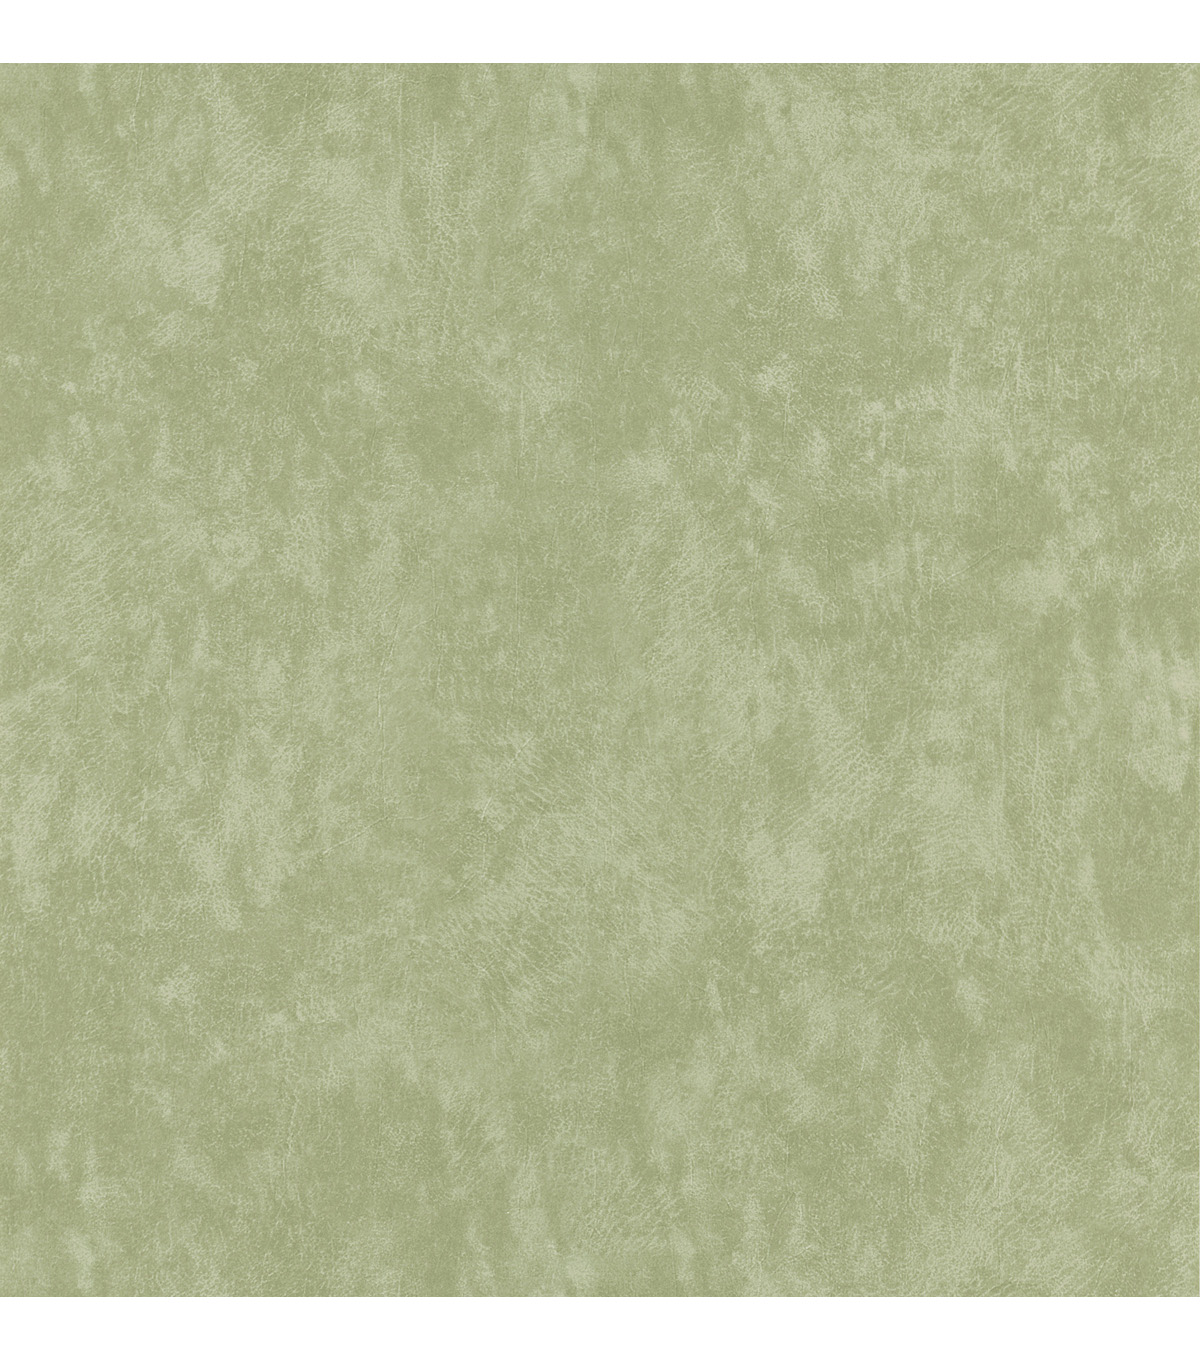 Ashland Green Texture Wallpaper Sample